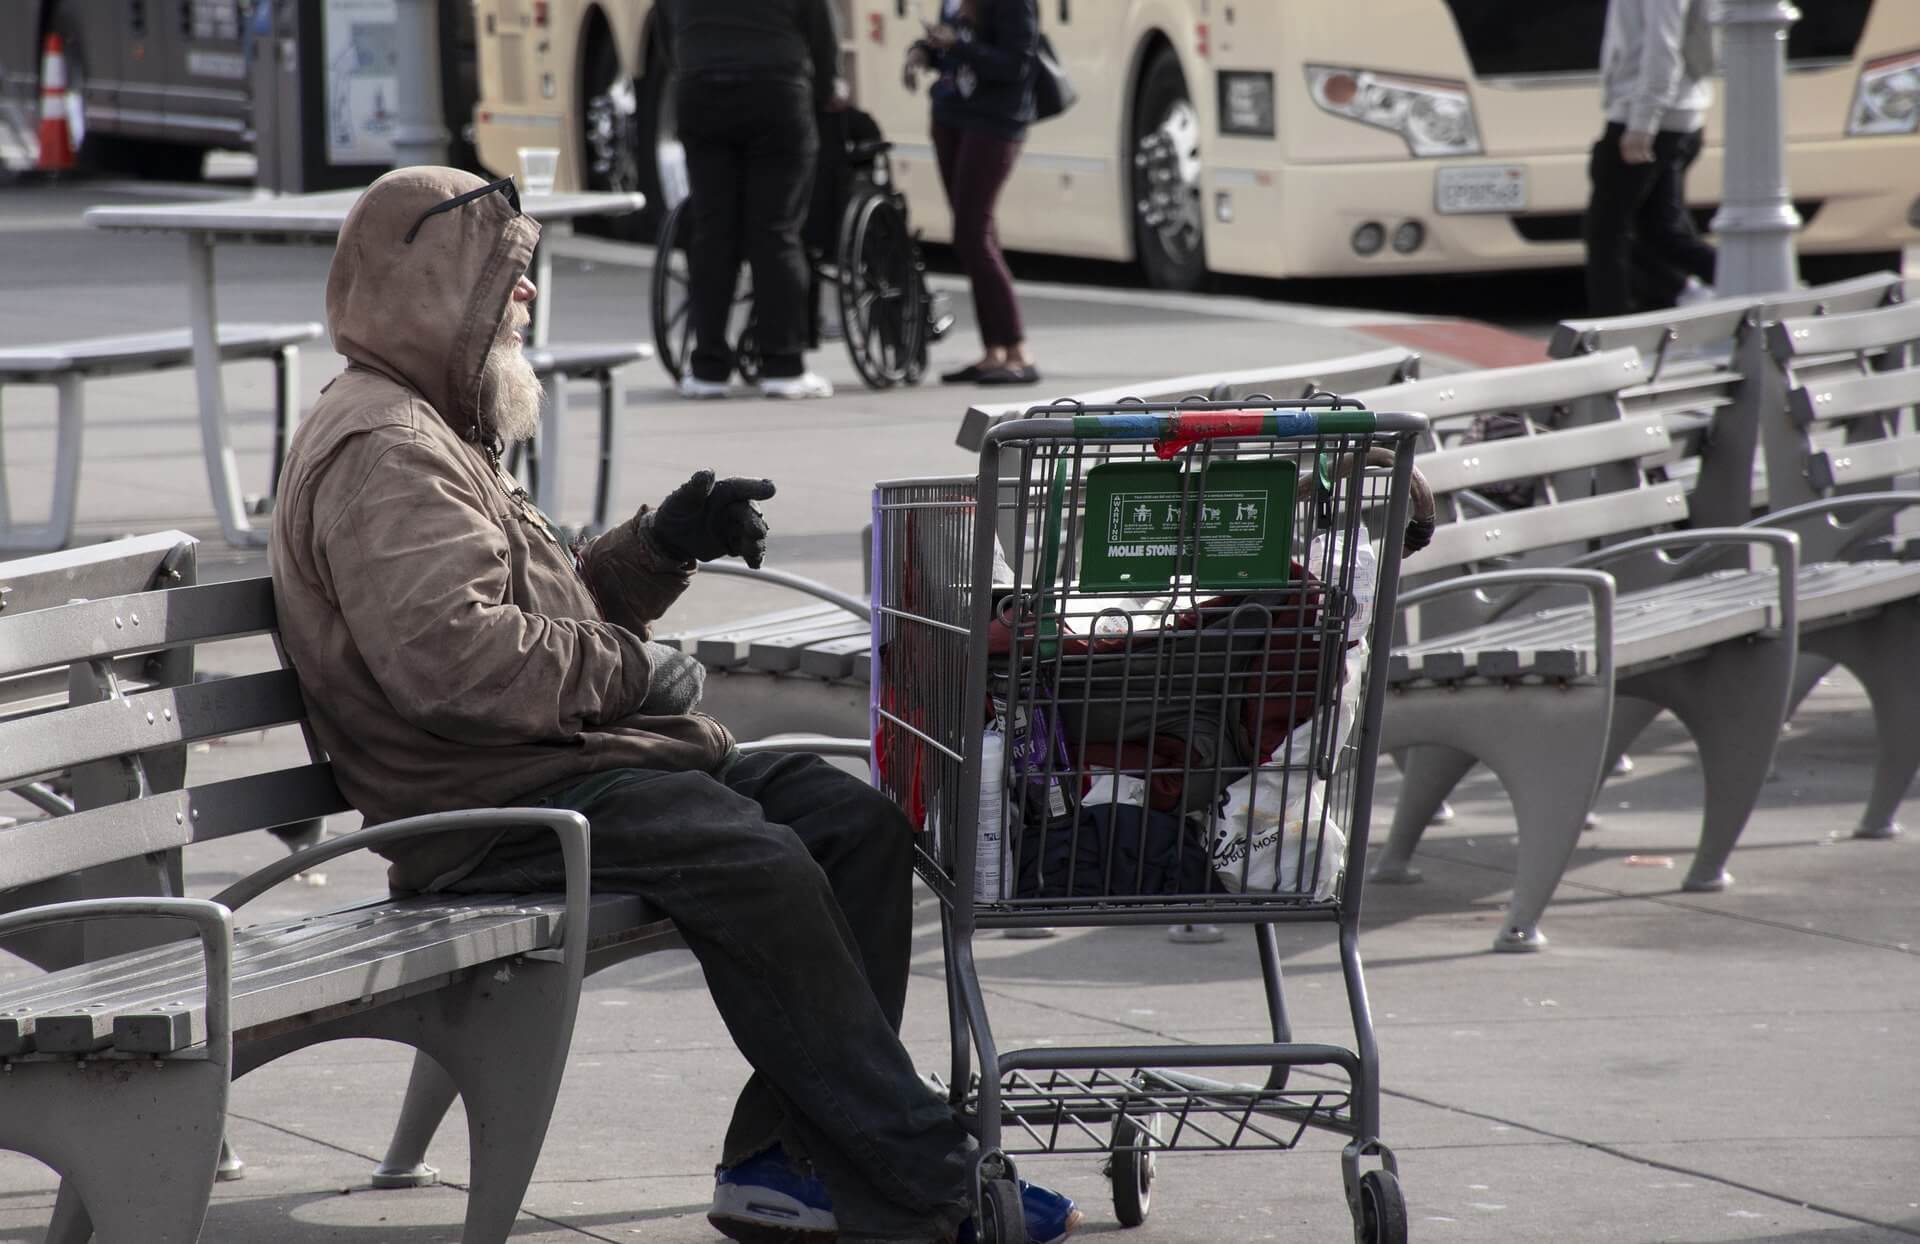 Homelessness in the United States is caused by misdirected priorities